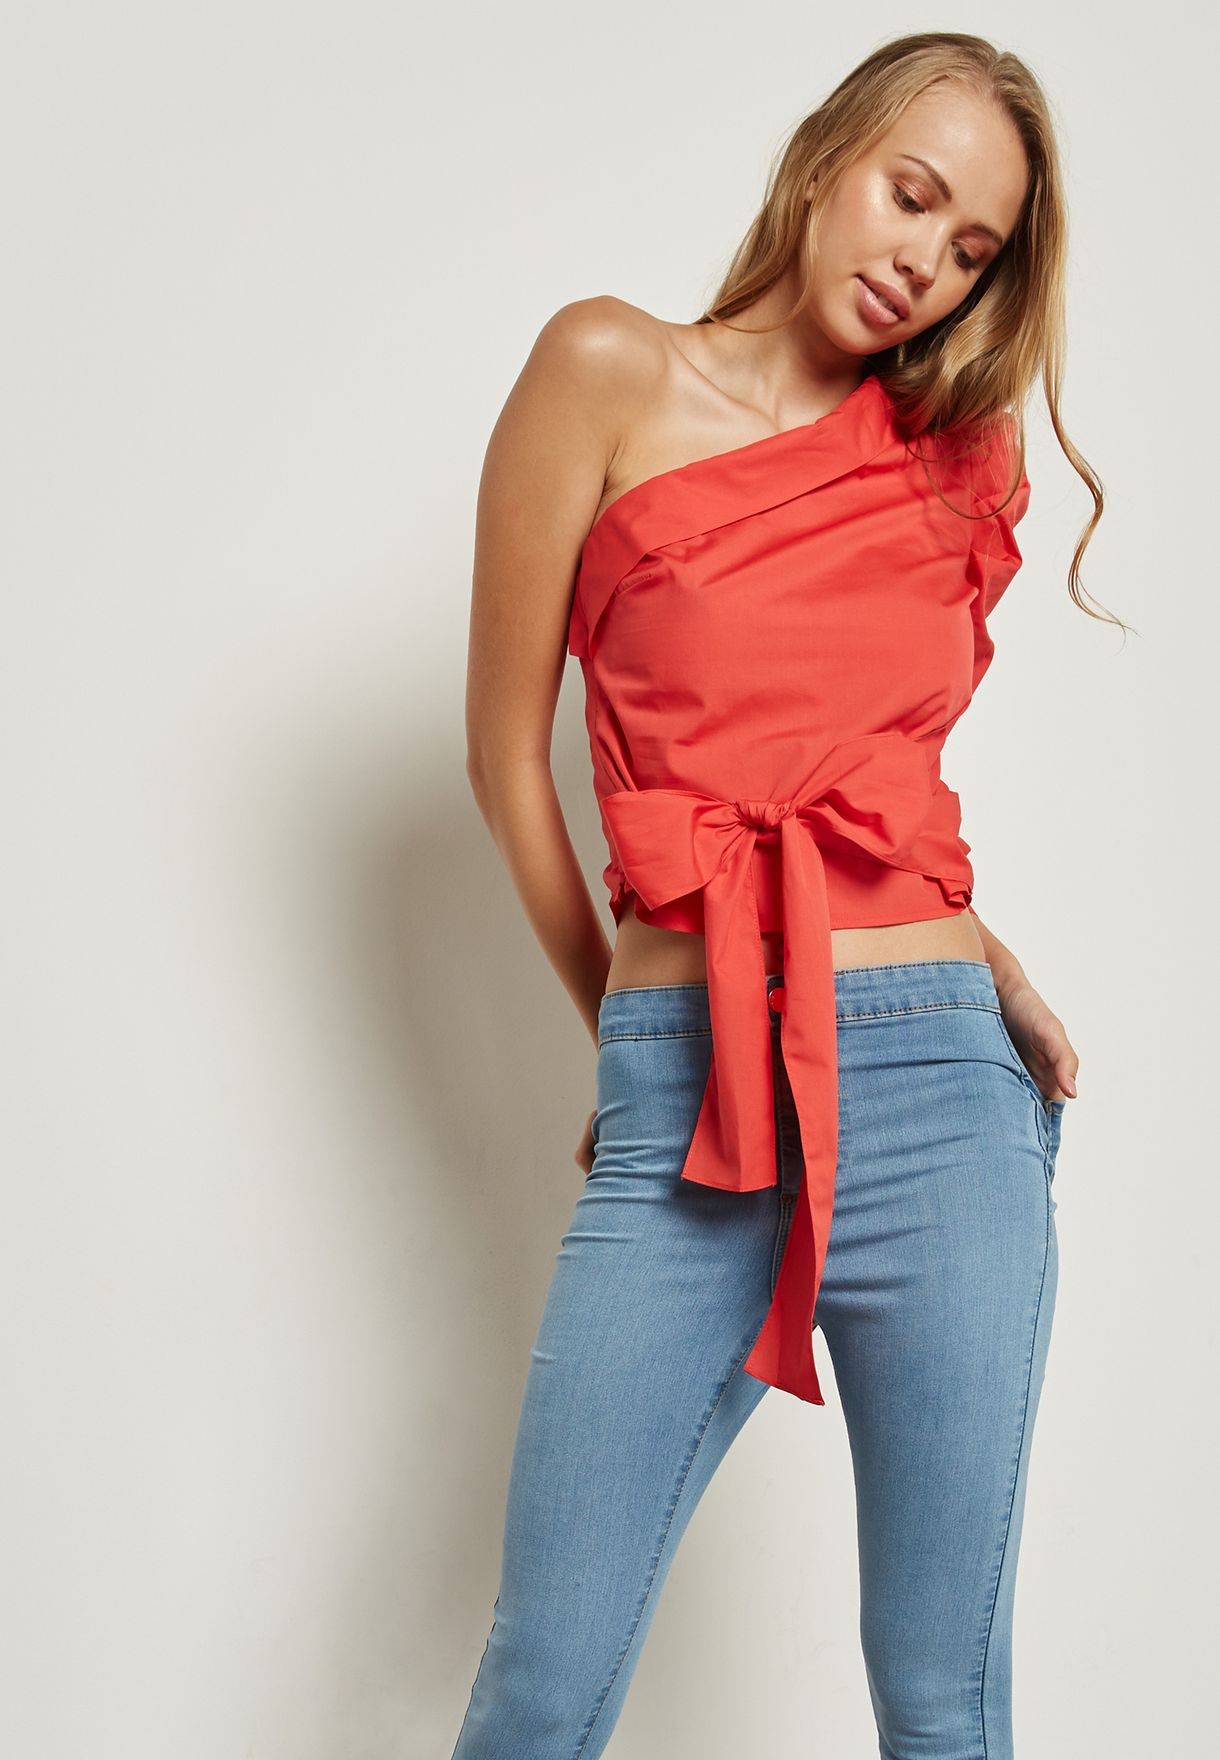 27a0b1c0925 Shop Miss Selfridge red One Shoulder Tie Waist Top 15E90VRED for ...